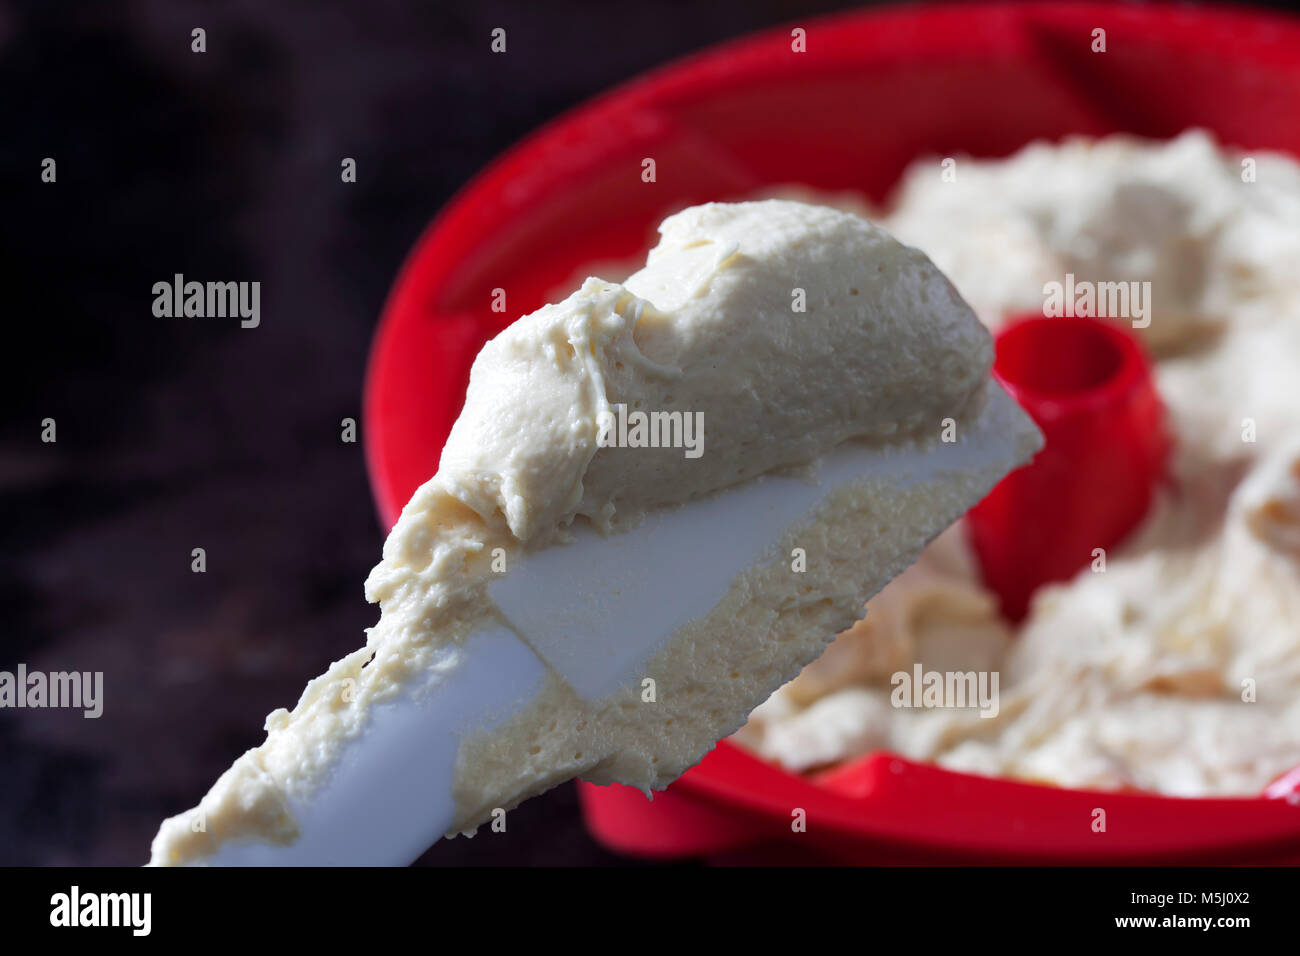 Dough scraper with fresh batter, close-up Stock Photo